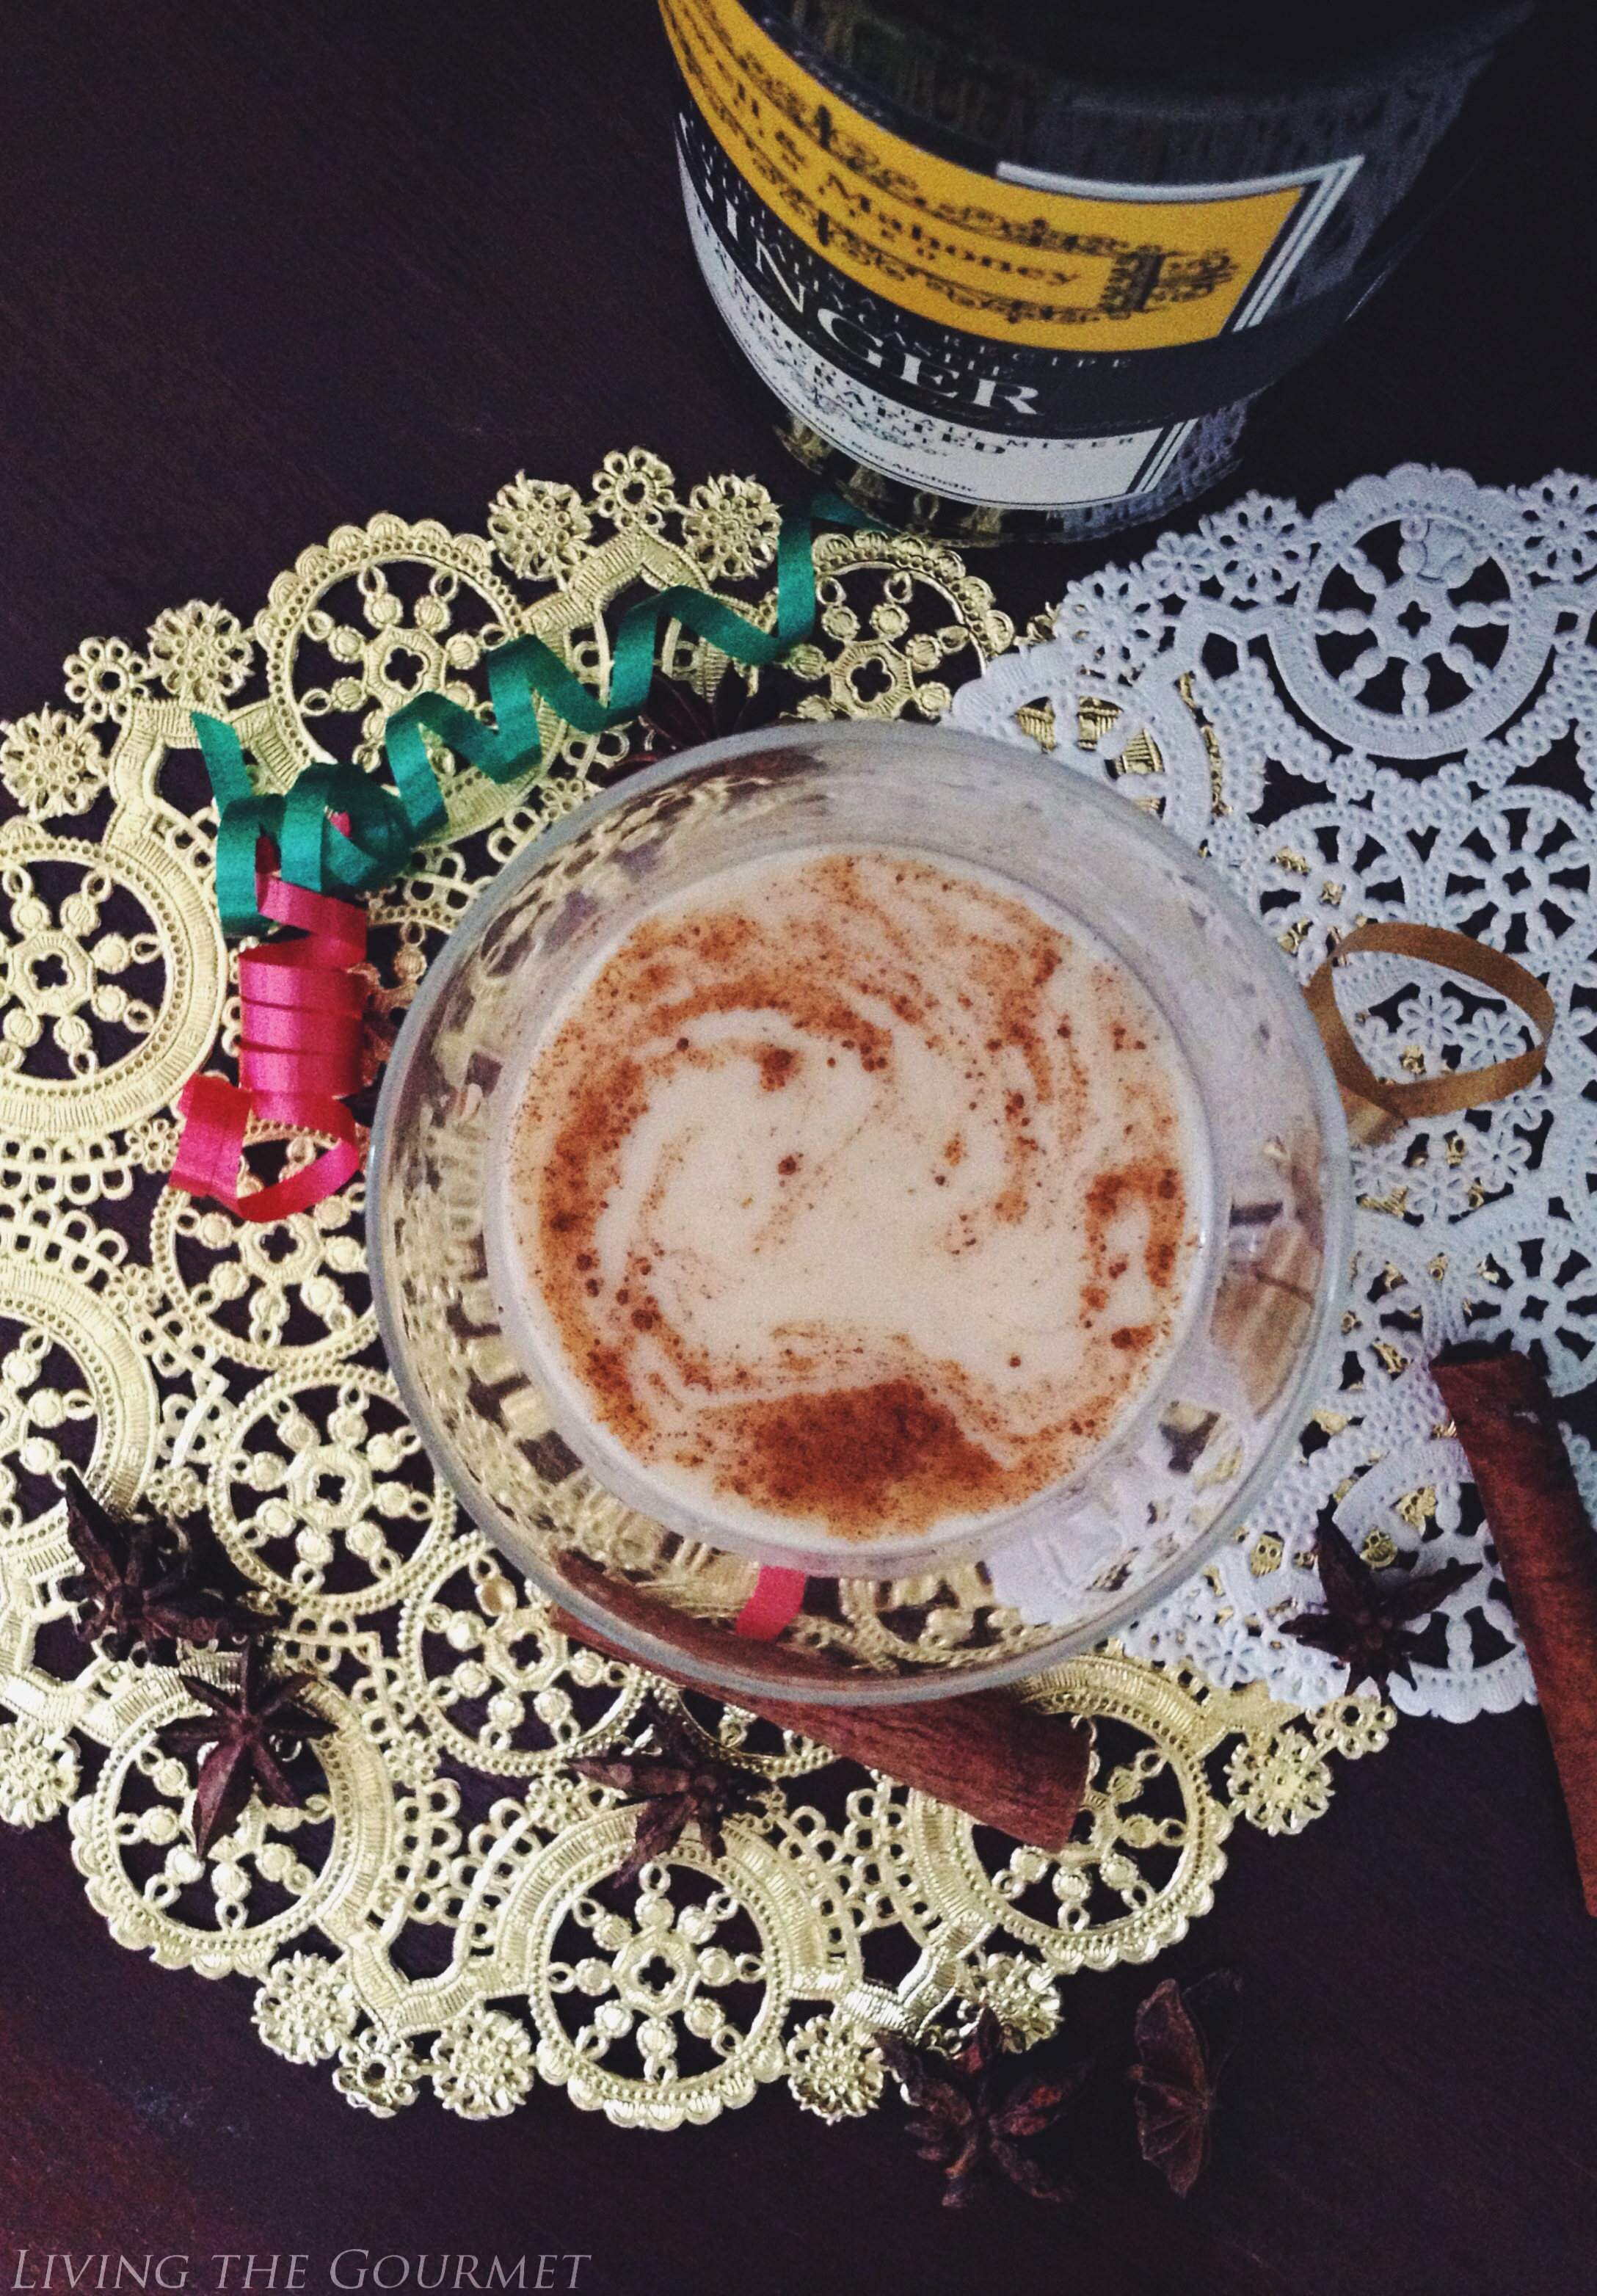 Living the Gourmet: Spiced Ginger Eggnog